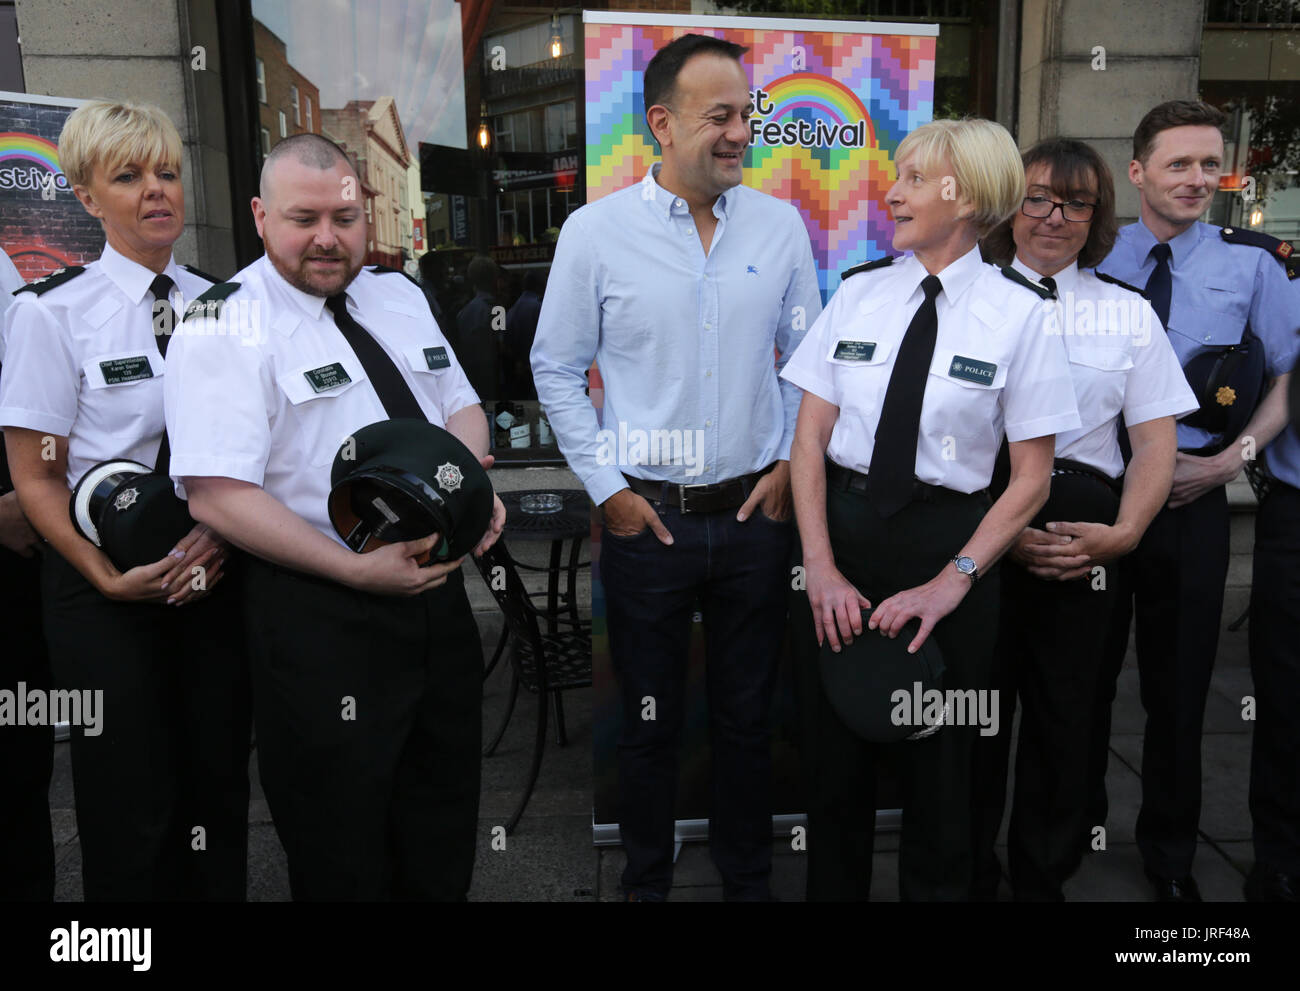 Belfast, Northern Ireland. 5th August 2017. Taoiseach Leo Varadkar (centre) poses with members of the Police Service Stock Photo